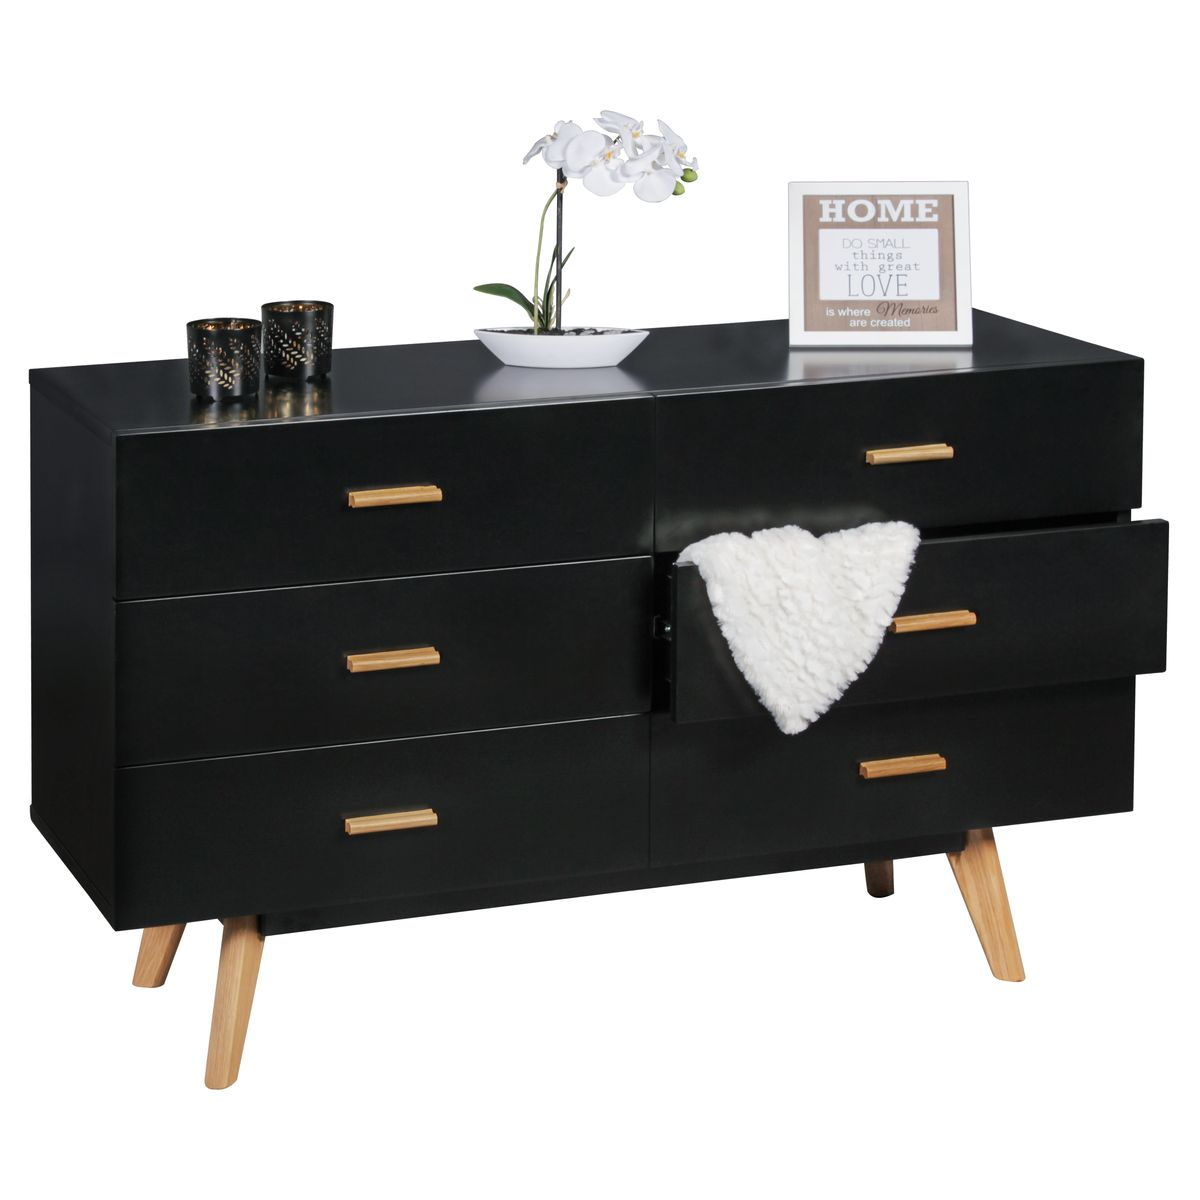 finebuy sideboard scanio mdf holz schwarz mit 6 schubladen. Black Bedroom Furniture Sets. Home Design Ideas